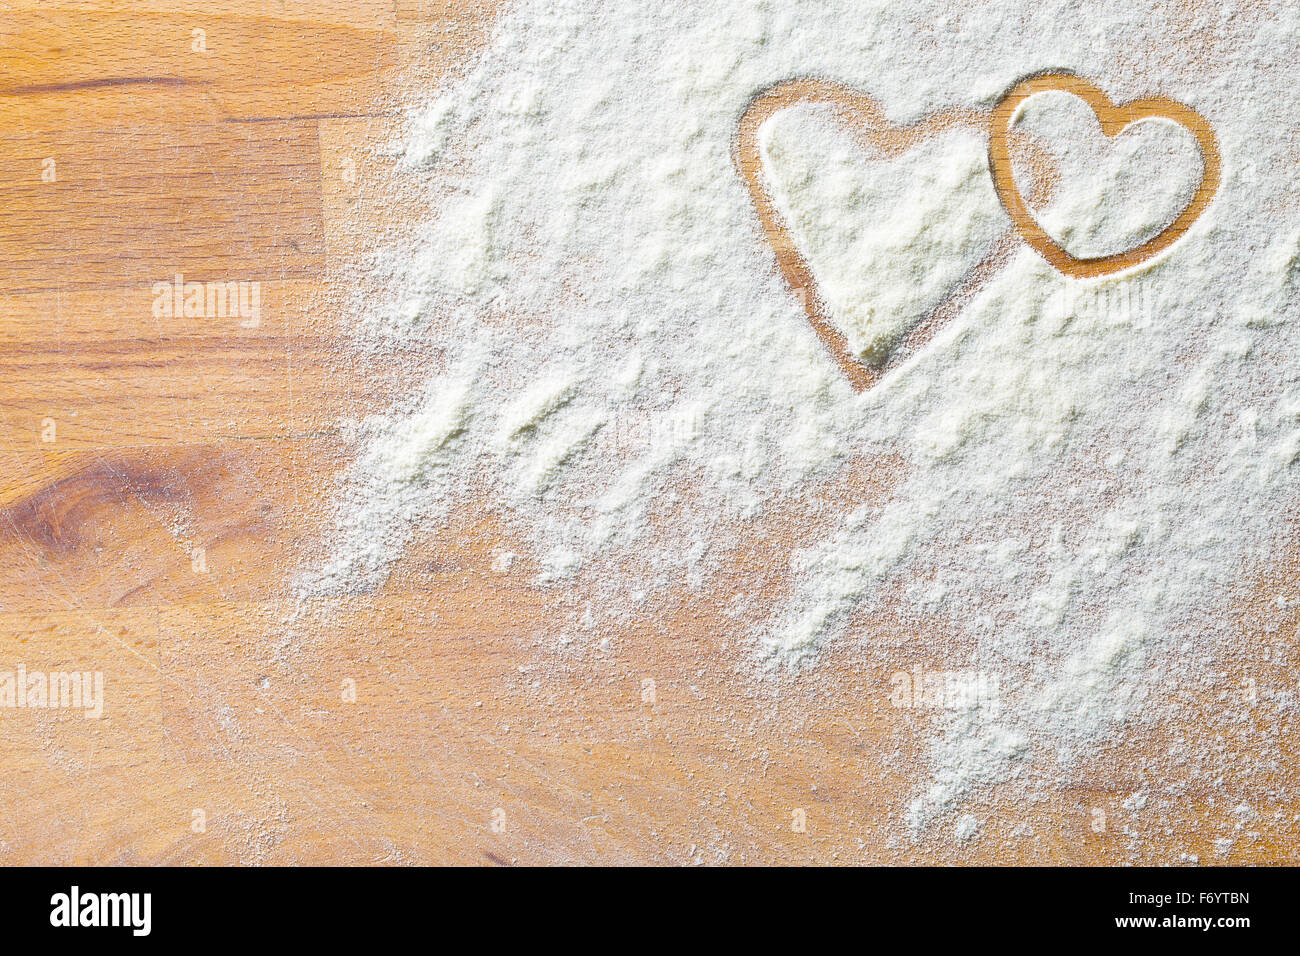 hearts of flour on a wooden table - Stock Image